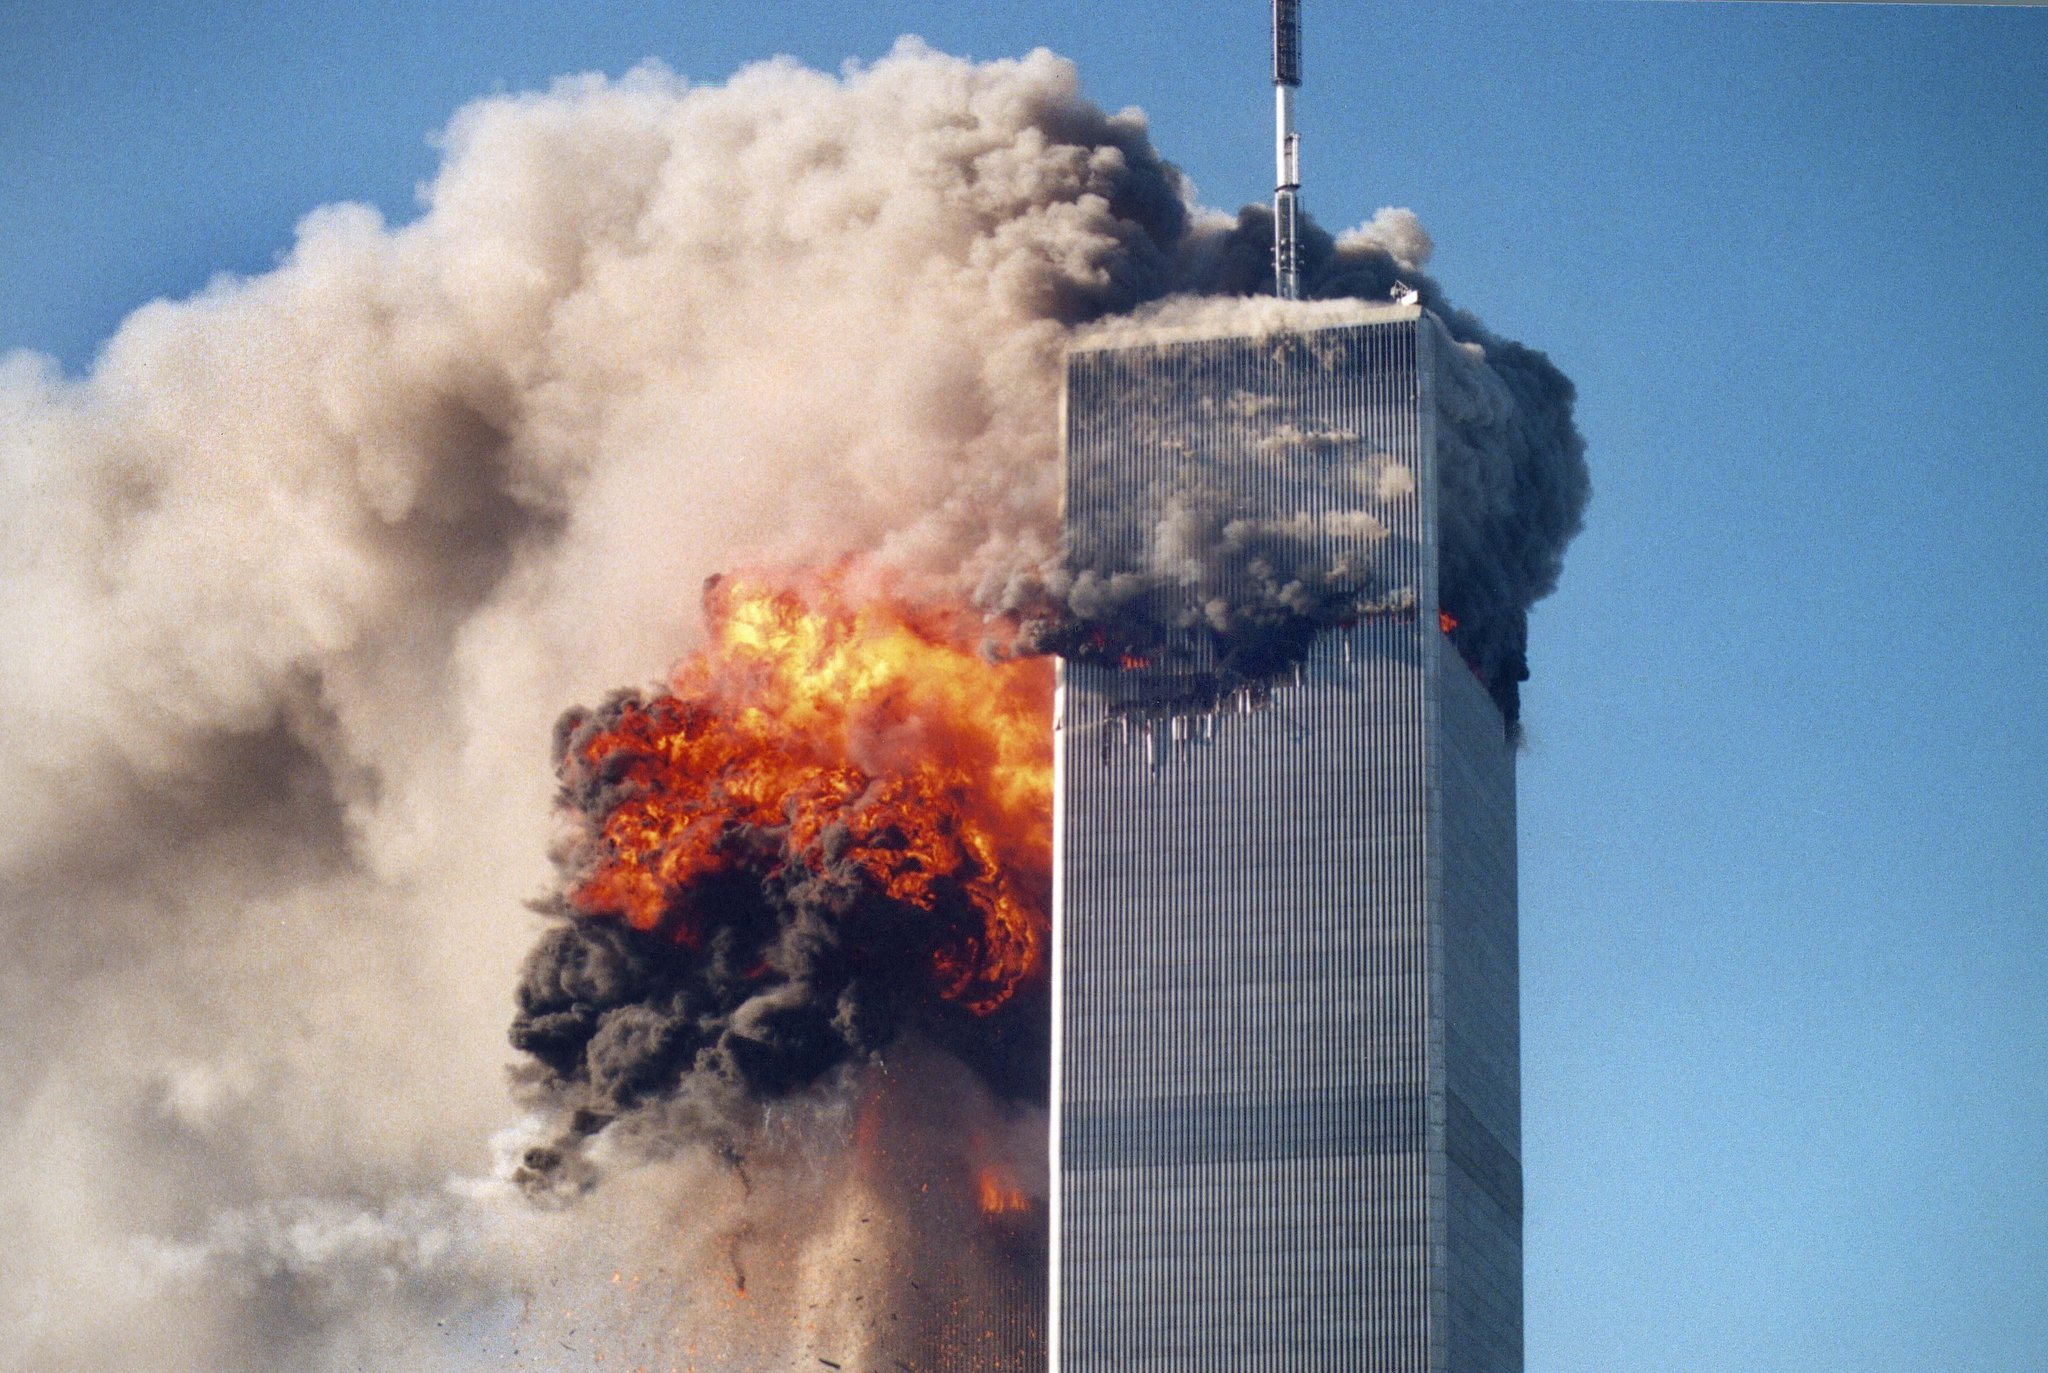 911-attack-twin-towers-terrorism